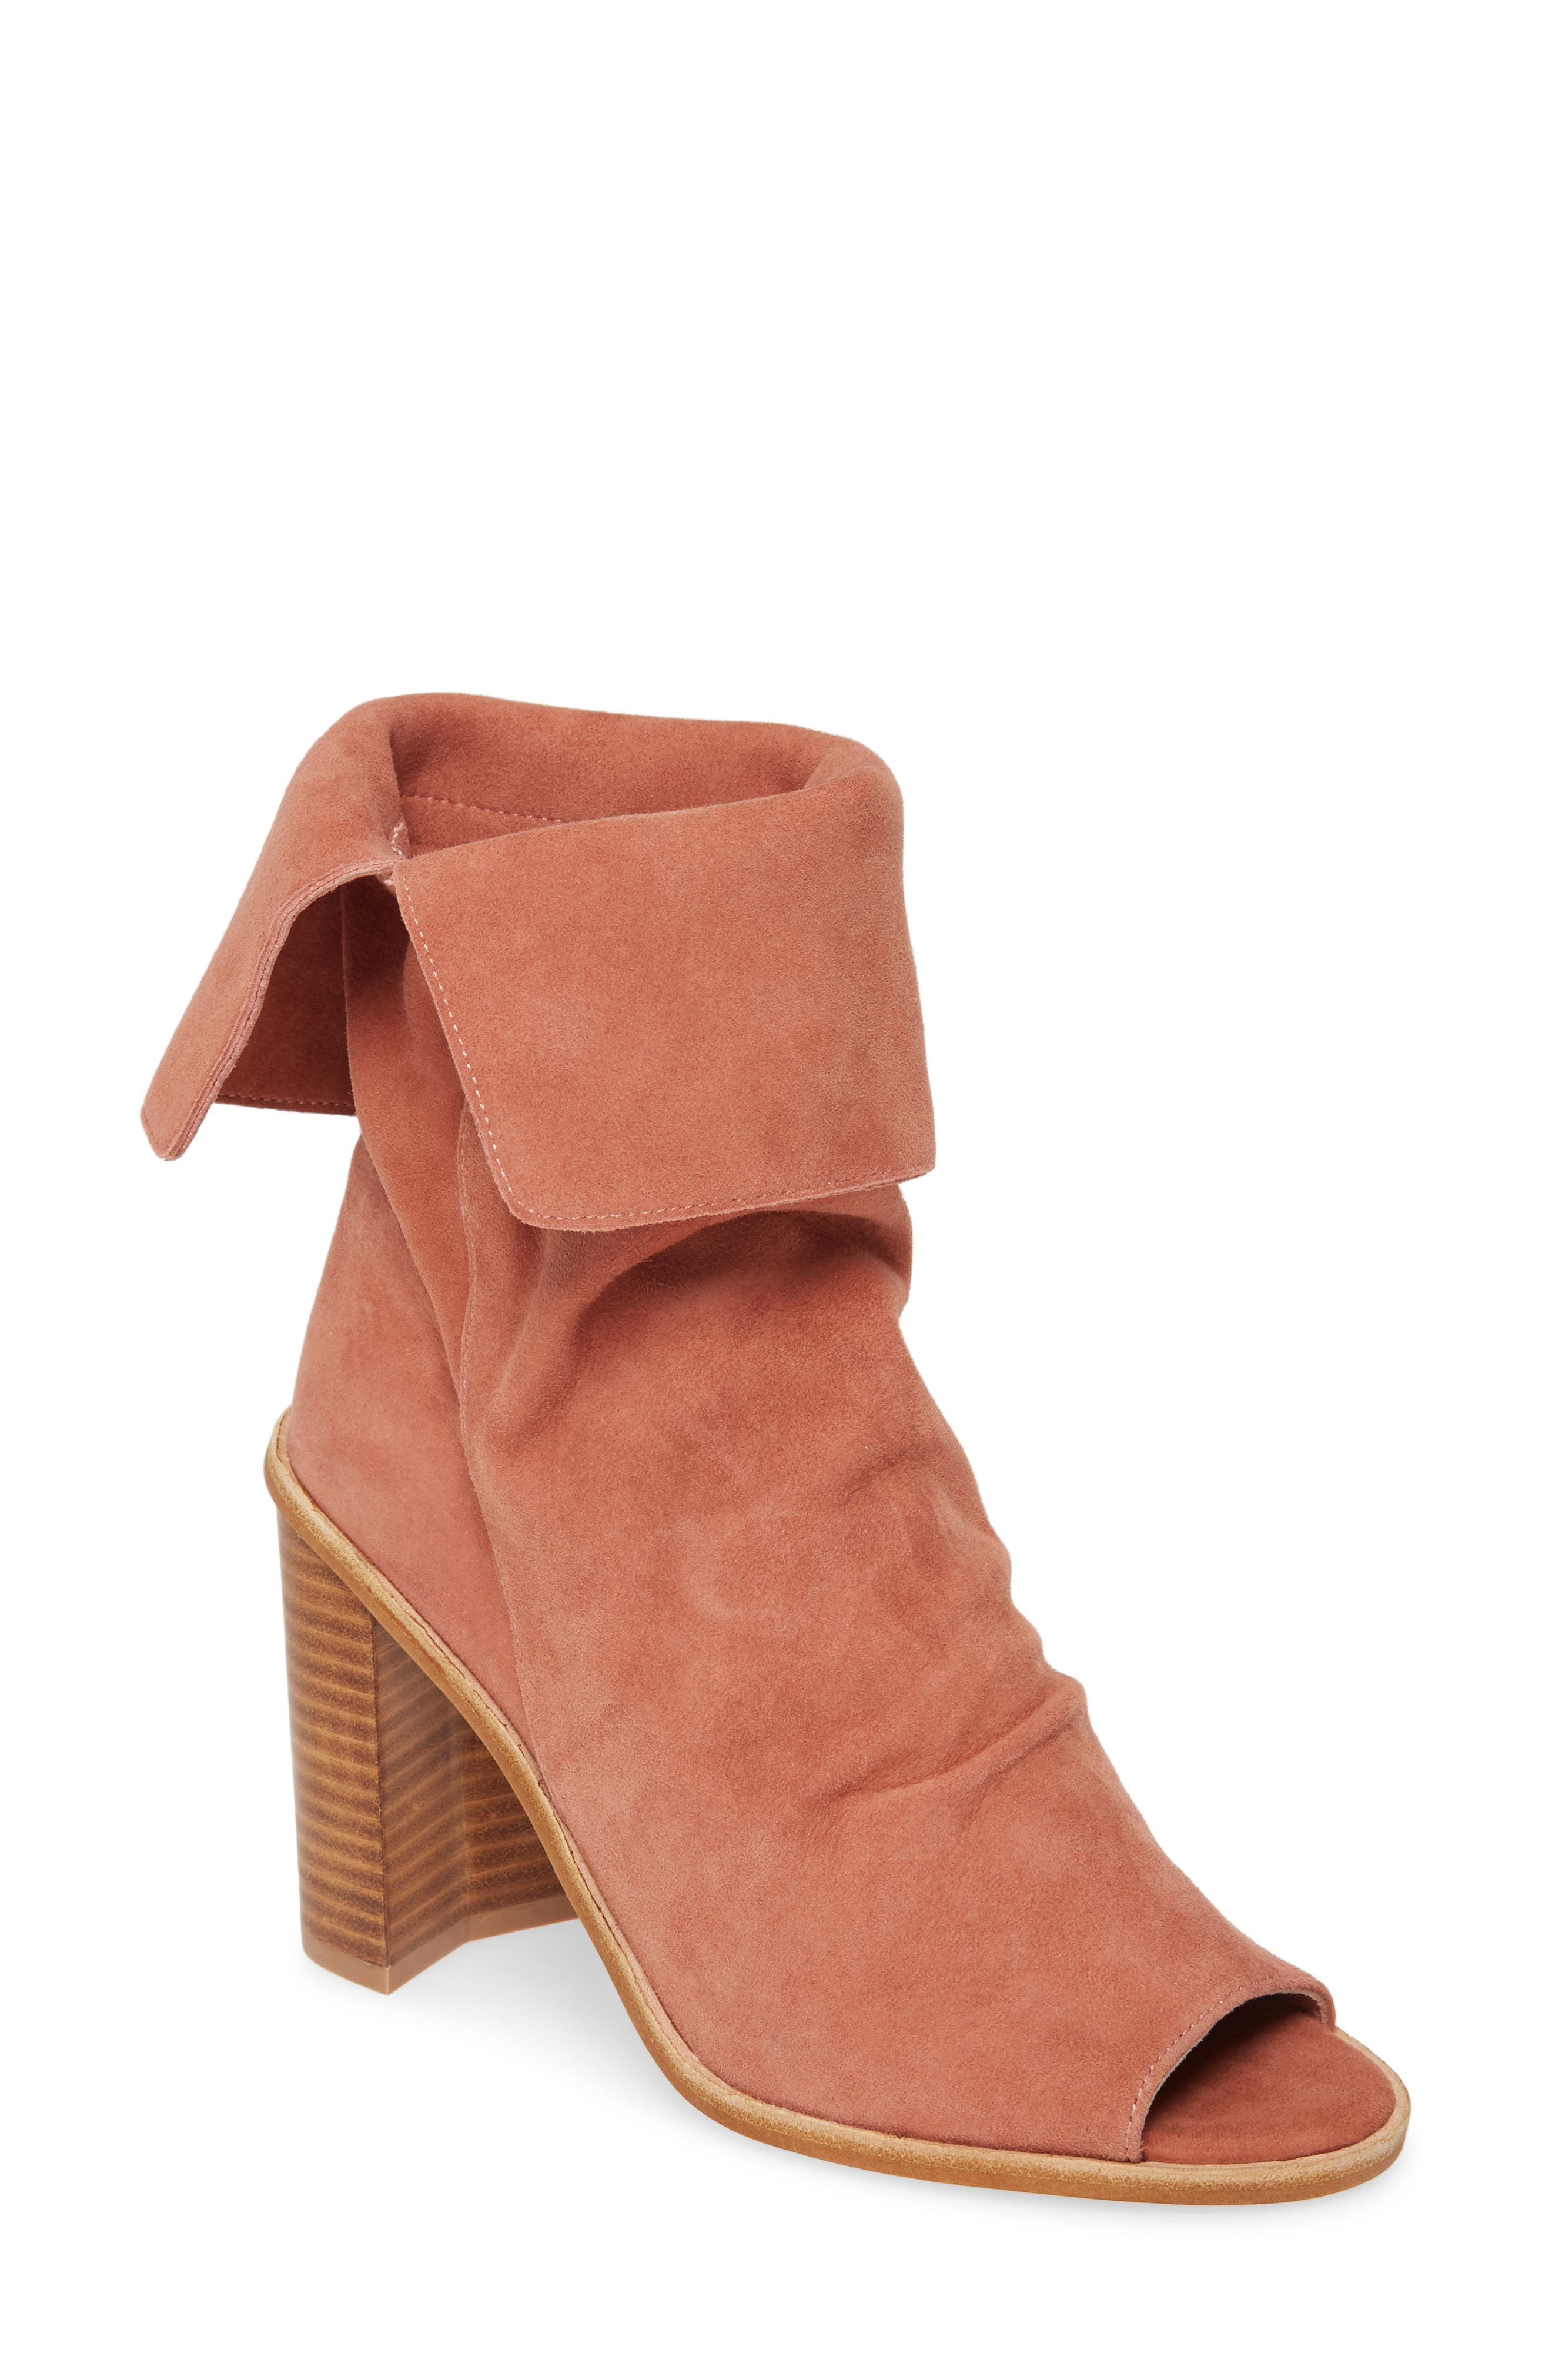 4b816cfd81f Women's 42 GOLD Booties & Ankle Boots | Nordstrom